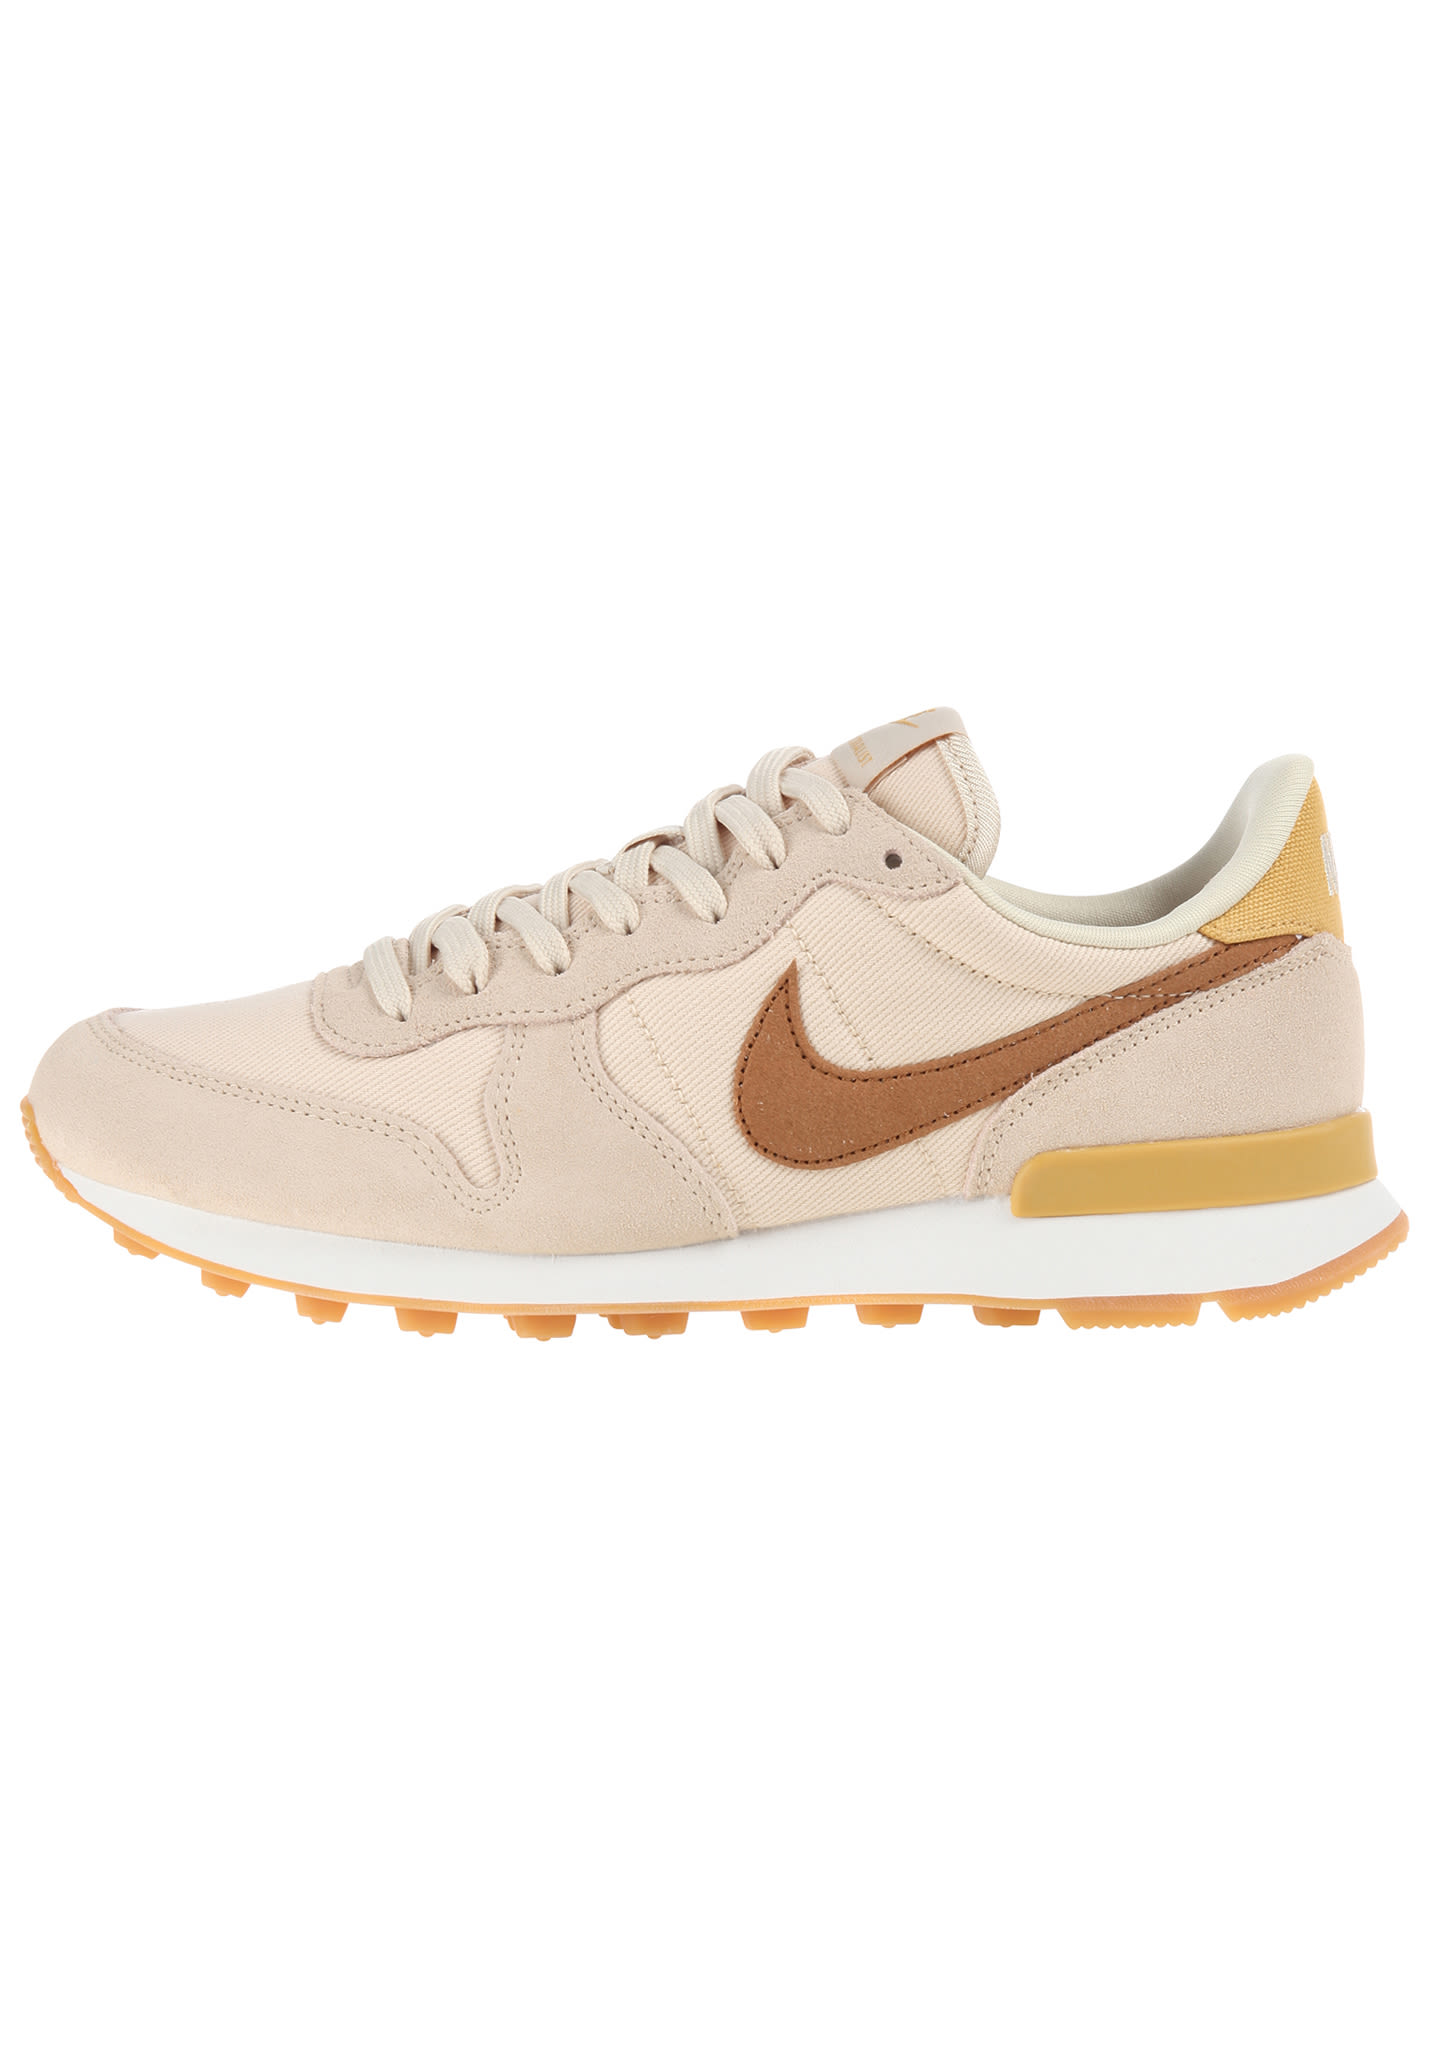 huge selection of beauty good quality NIKE SPORTSWEAR Internationalist - Sneakers for Women - Beige